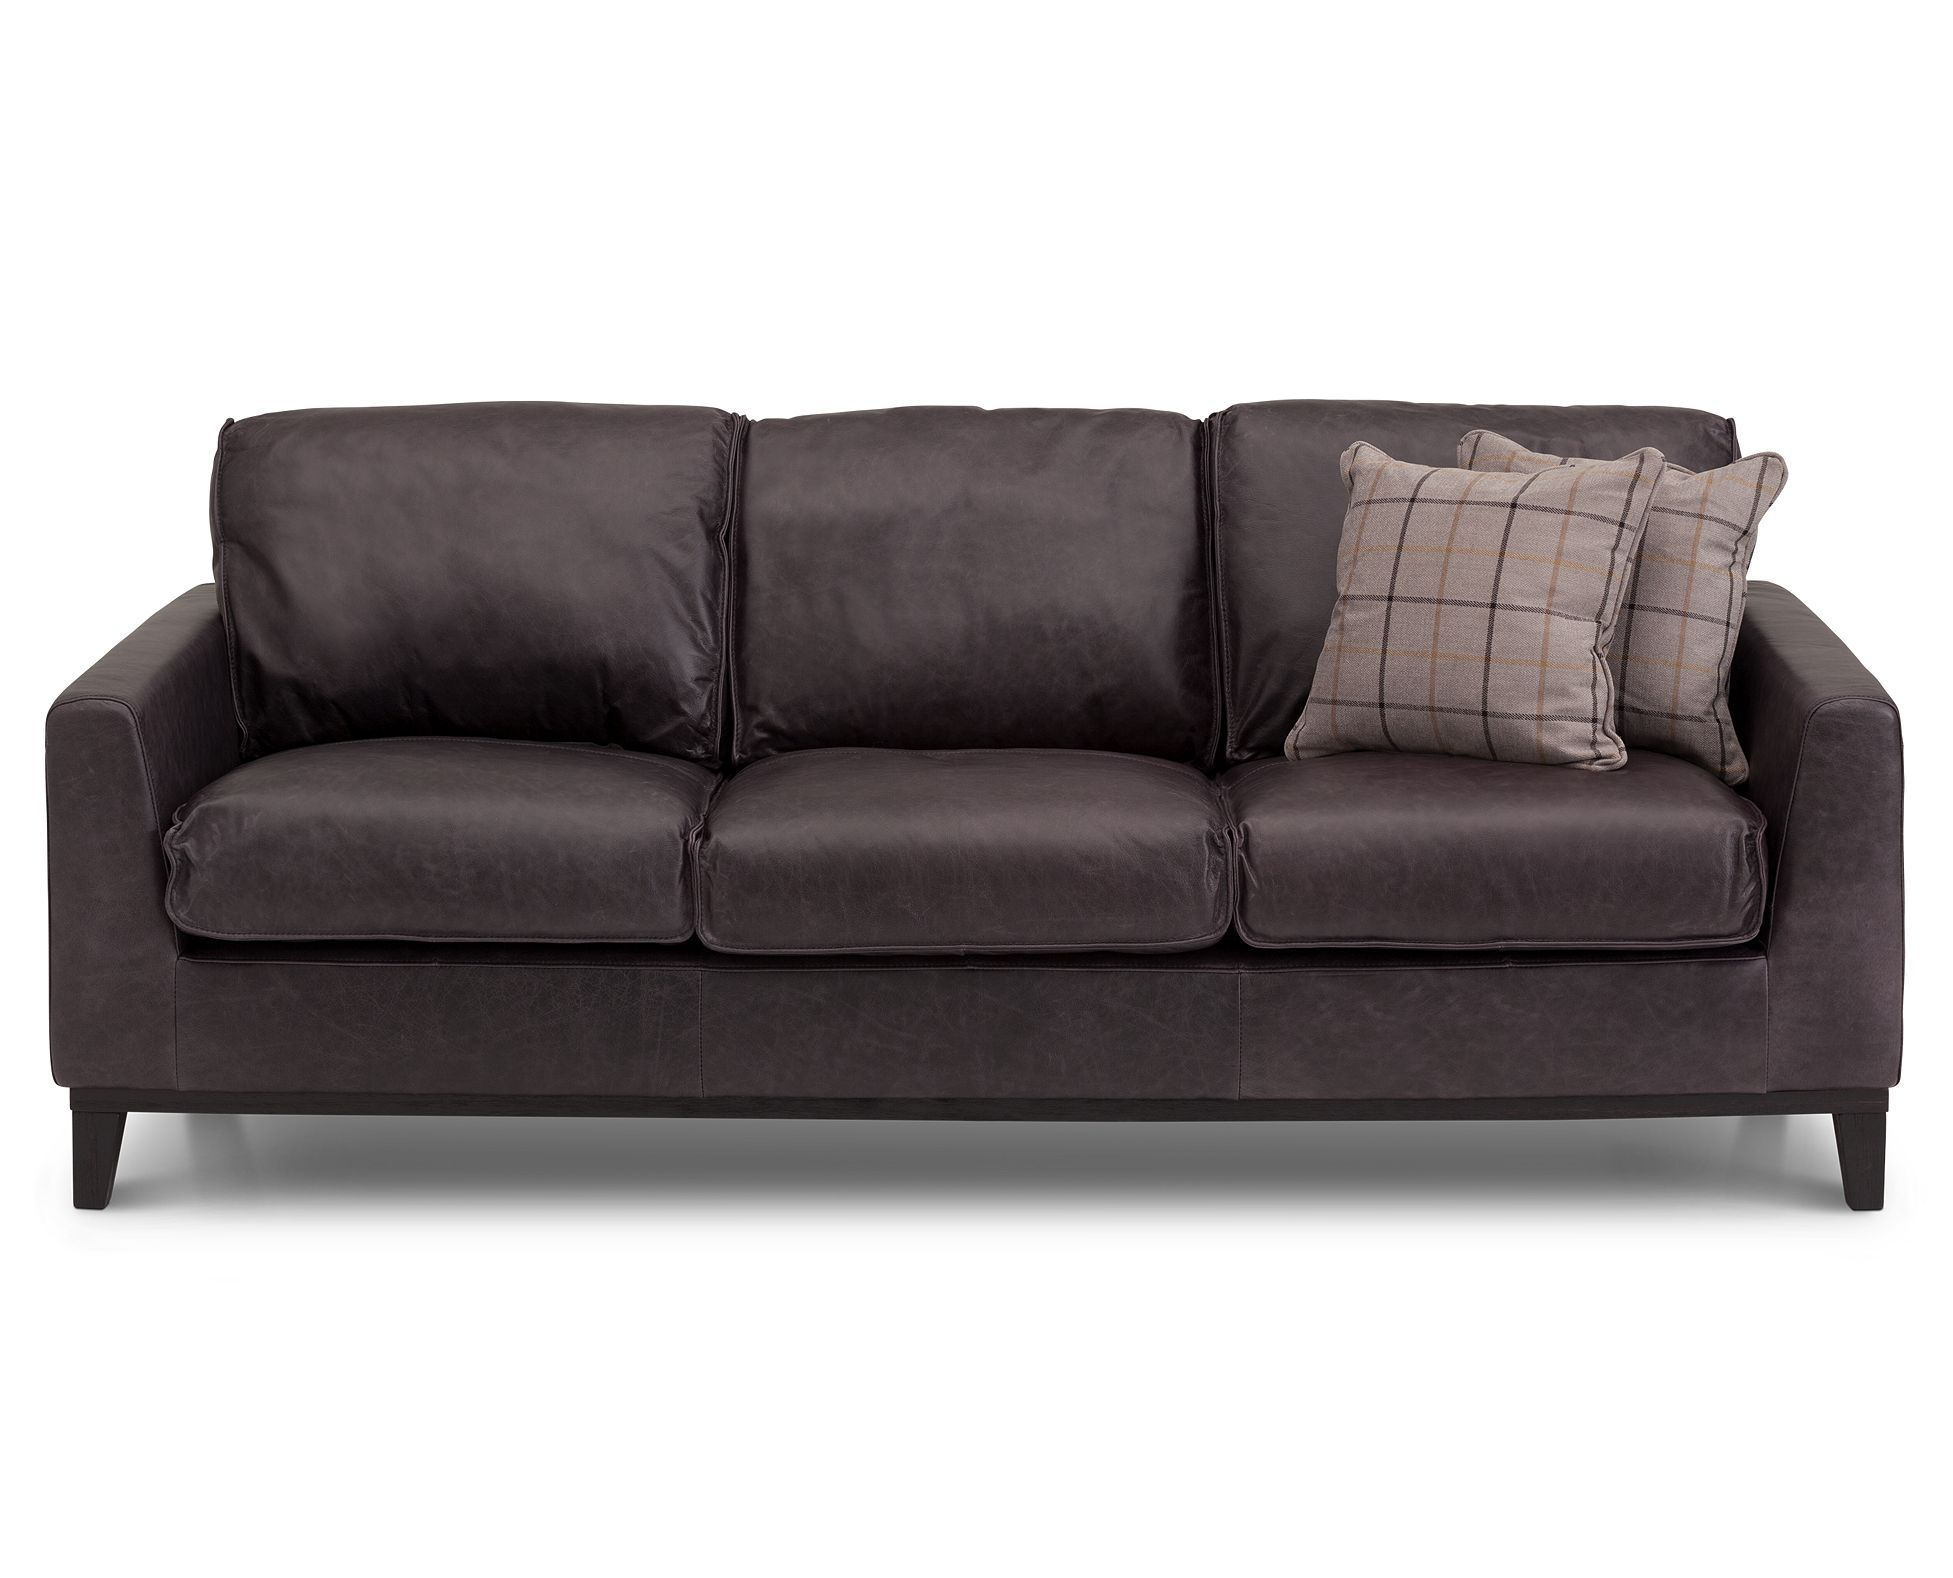 BLACK FRIDAY: Save $100 On The Cody Leather Sofa, Now $999. #blackfriday  #furniturerow